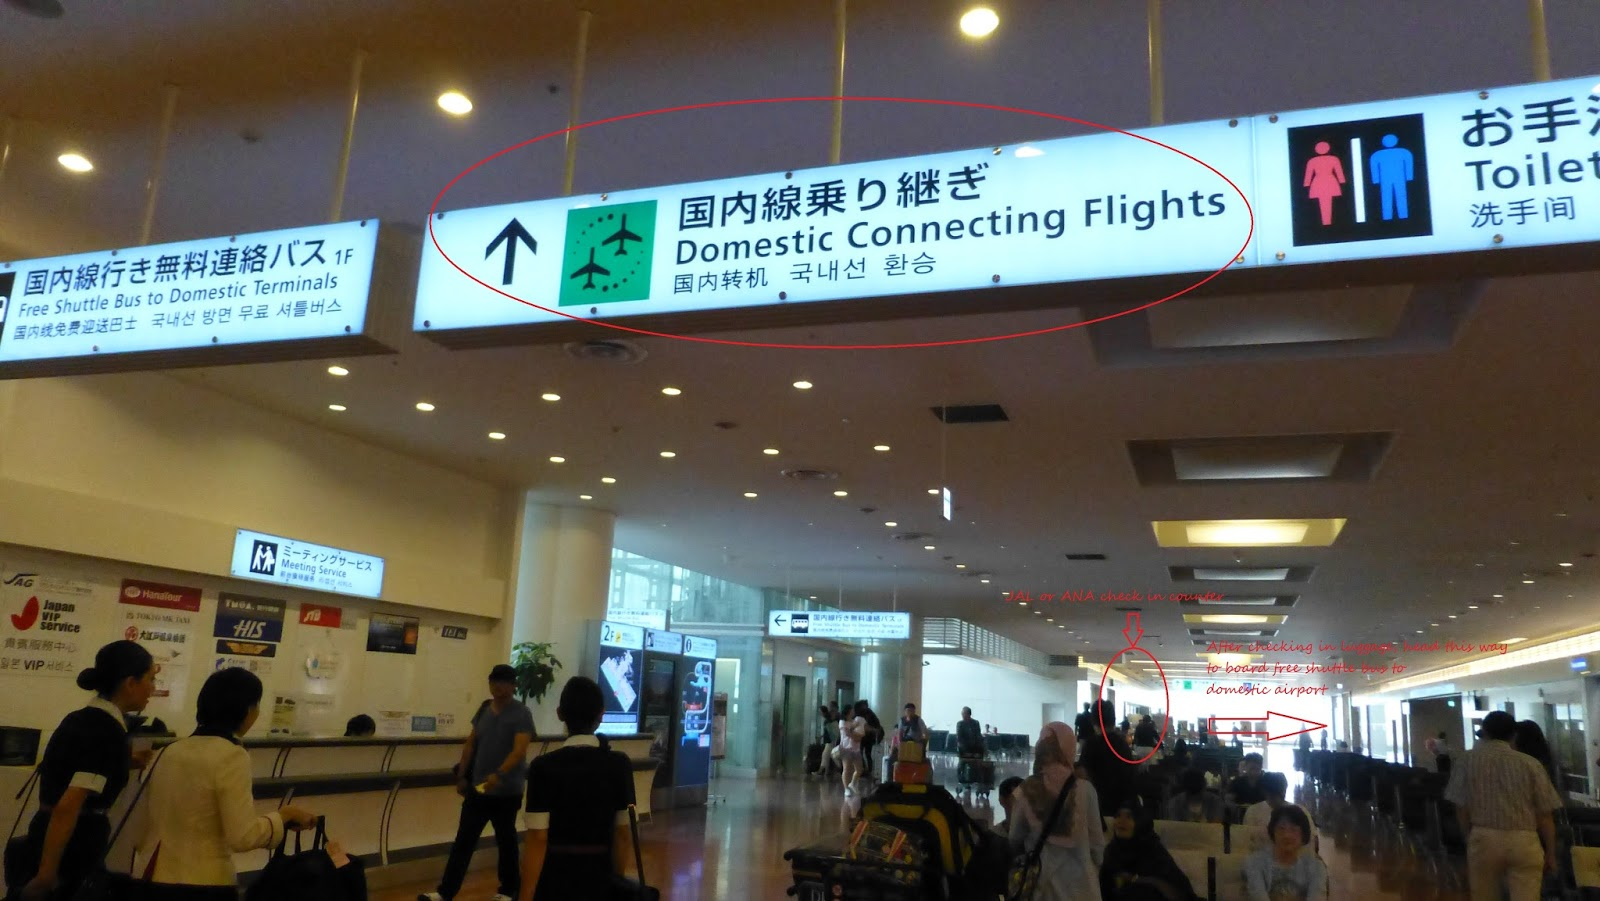 Aeroporto Guangzhou Arrive : Alice travelogue: japan trip 2015 how to make connecting flight